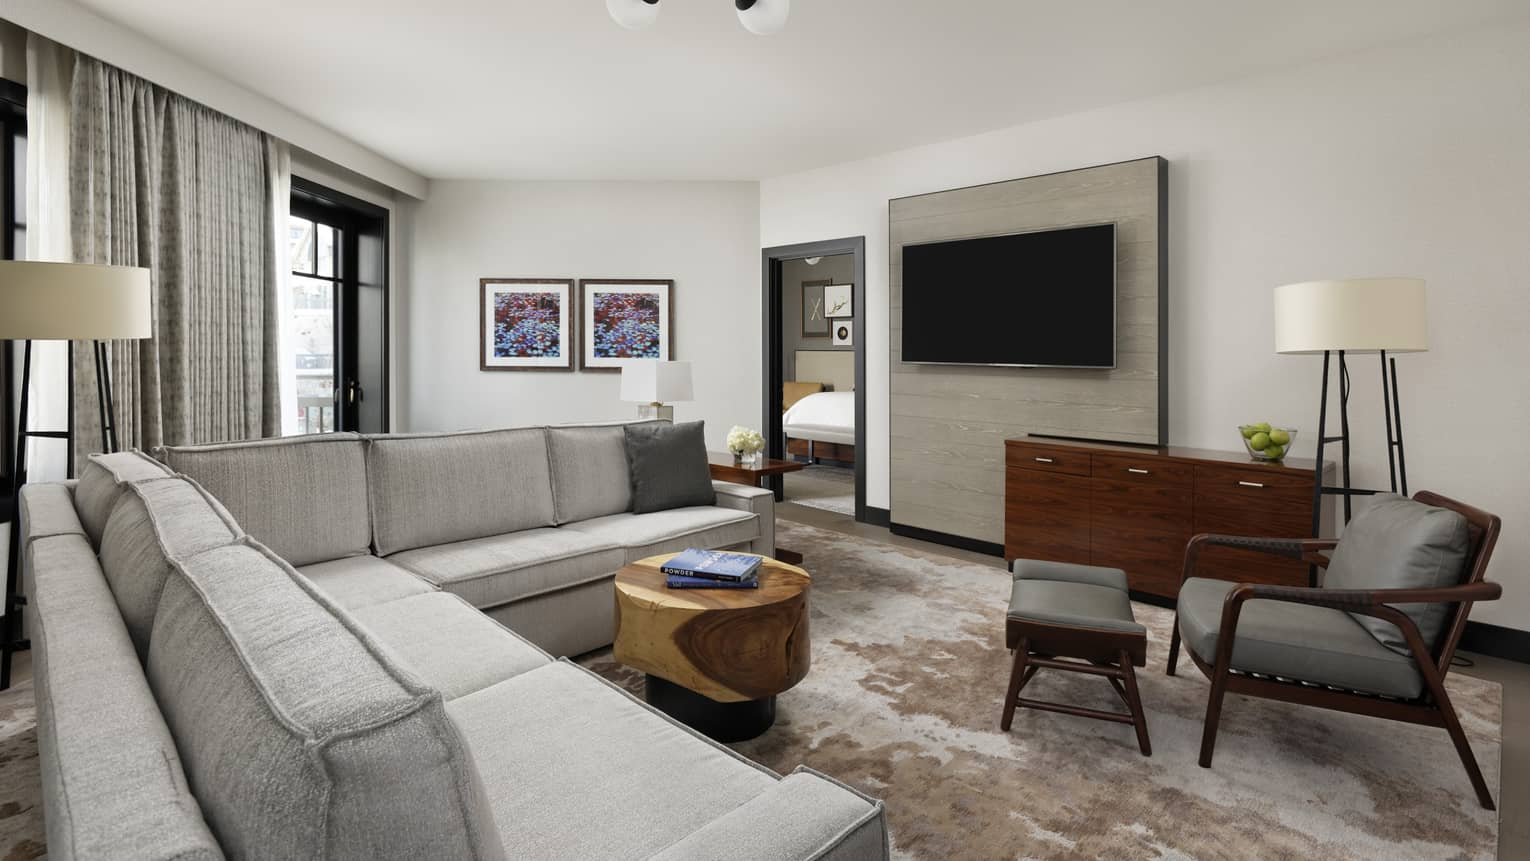 Living area in one bedroom suite with couch, chair, coffee table, and TV